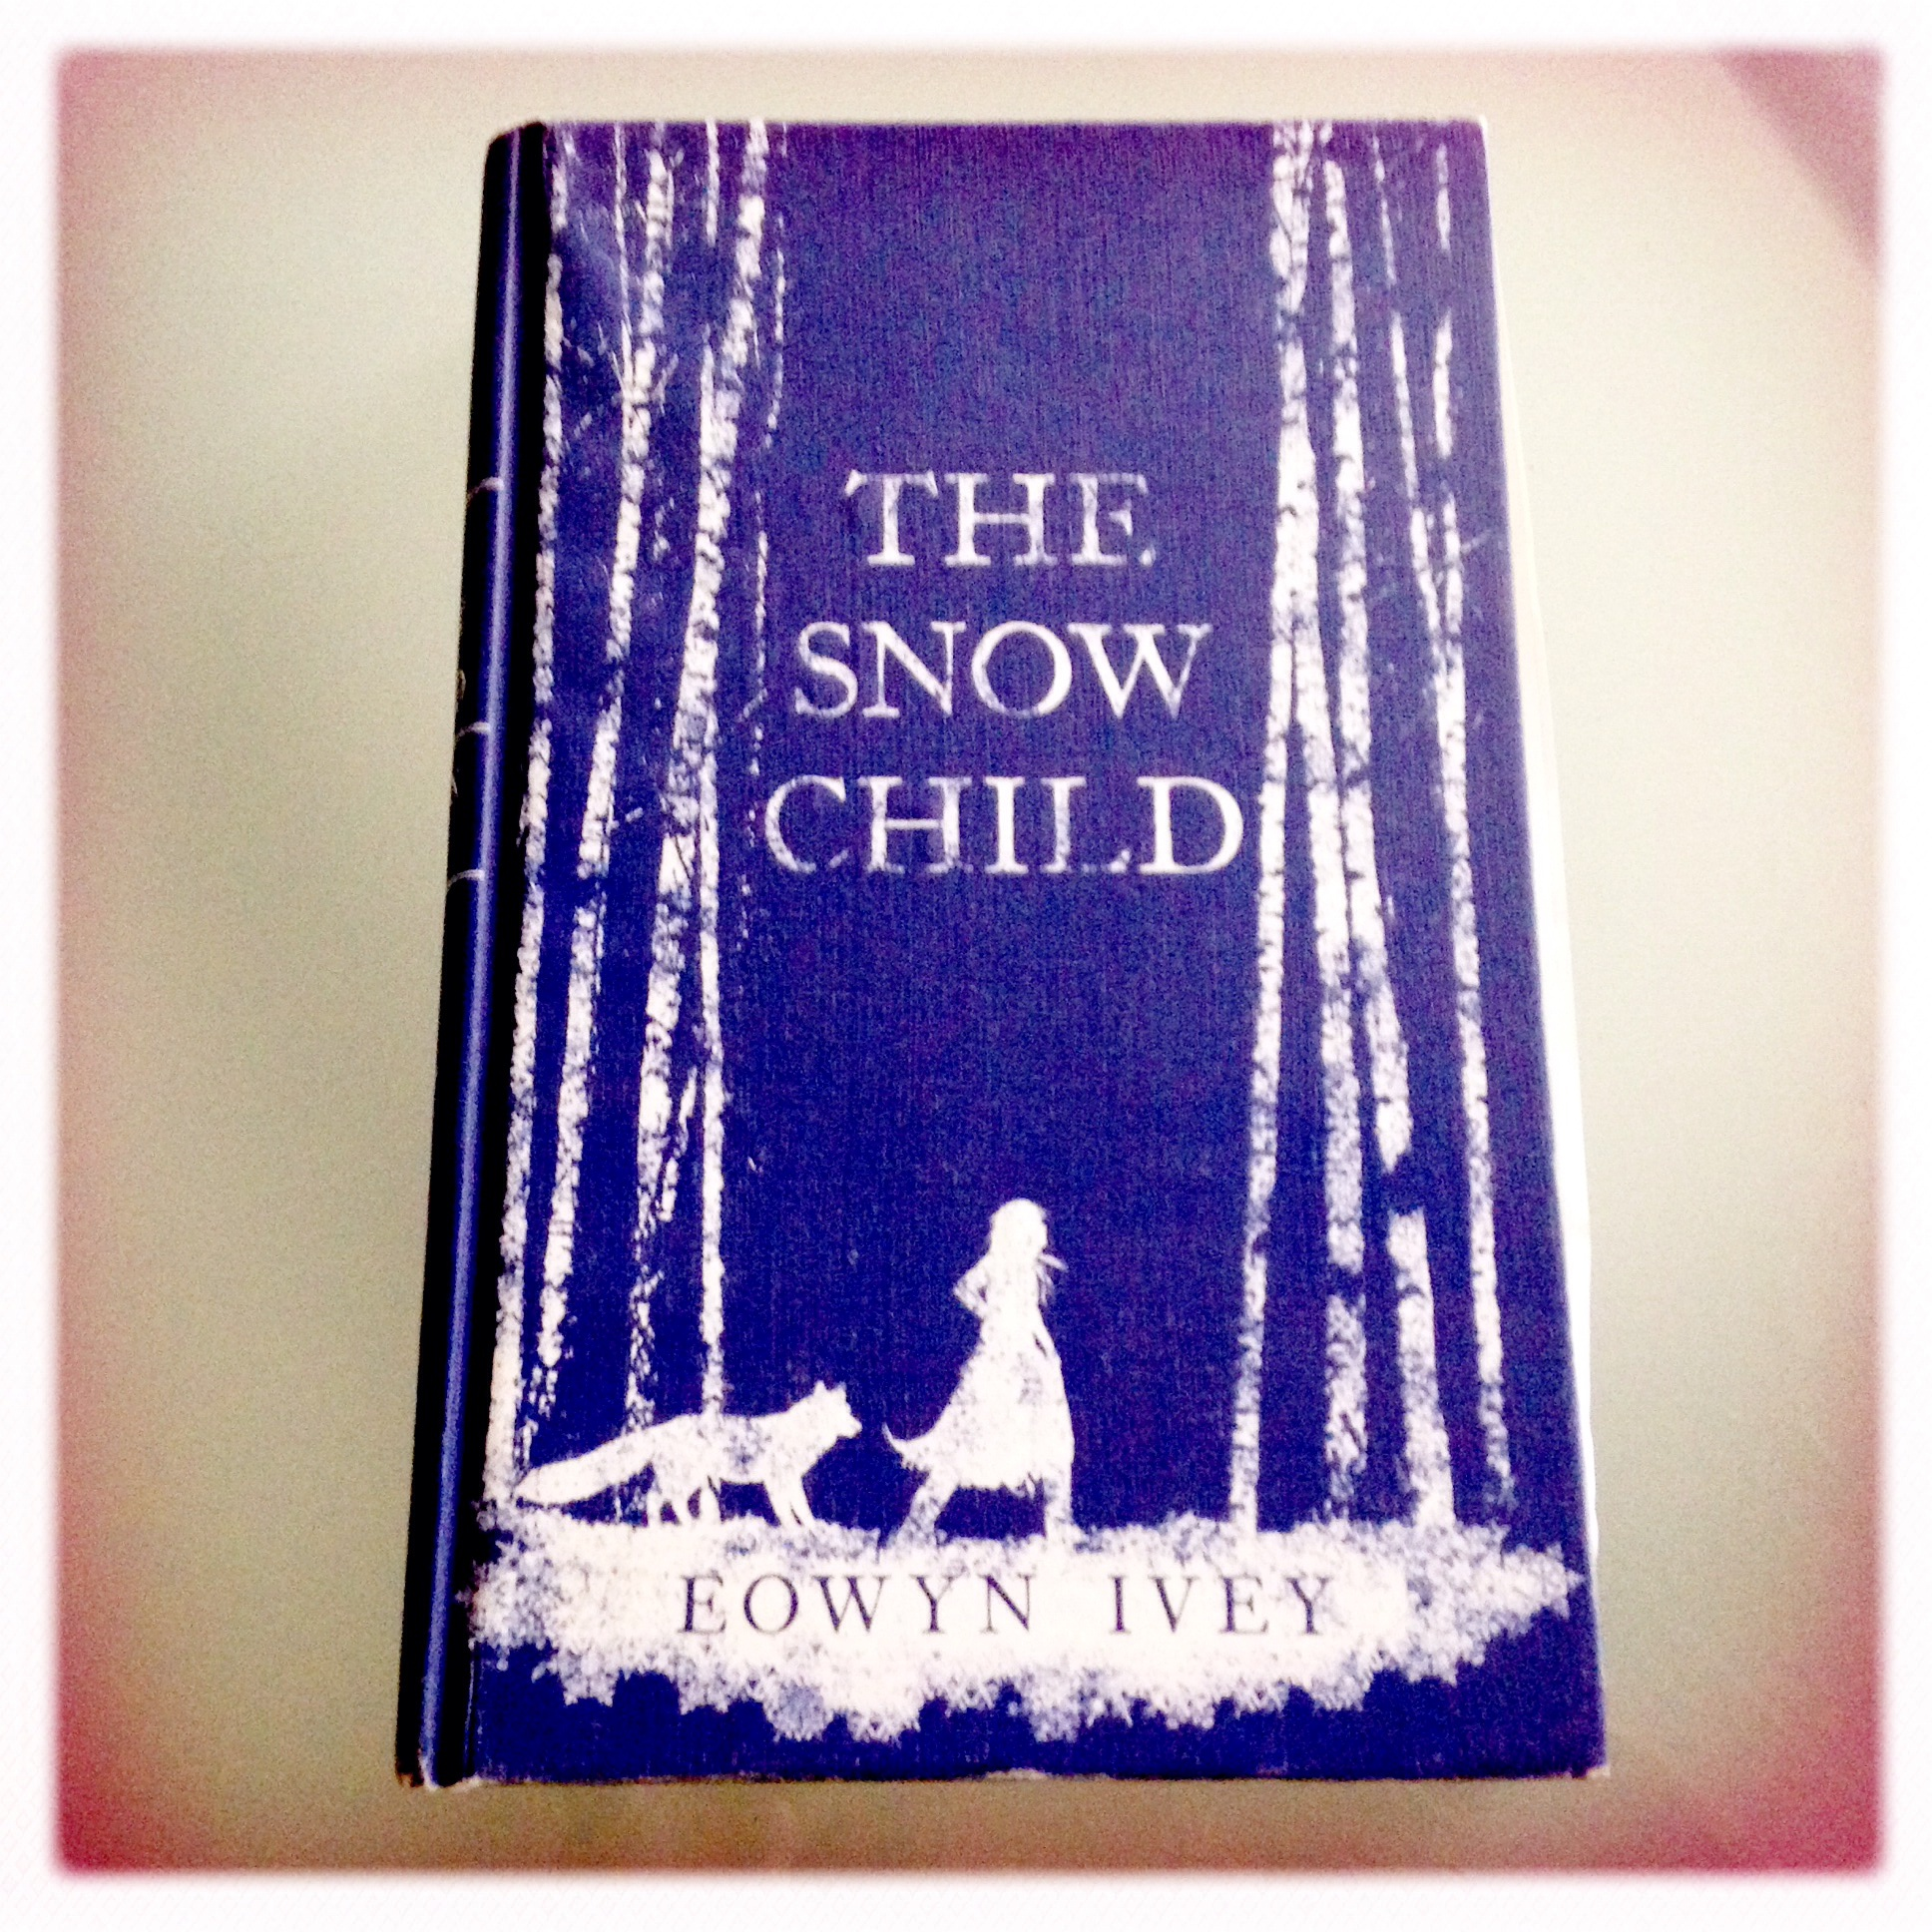 Can't Believe More People Haven't Read: The Snow Child and The Scarlet Pimpernel #bookadayUK